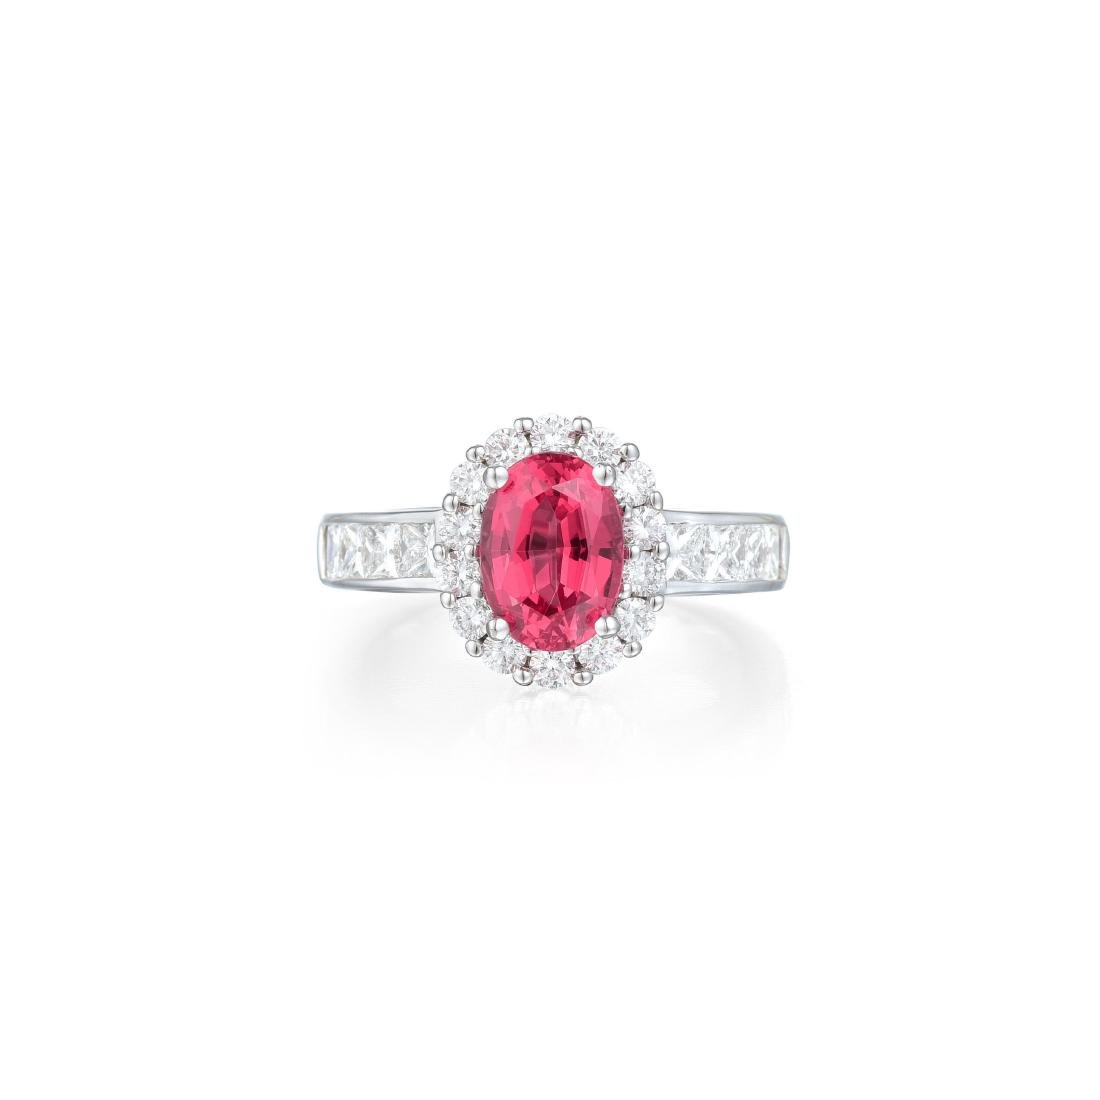 A 2.08-Carat Spinel and Diamond Ring